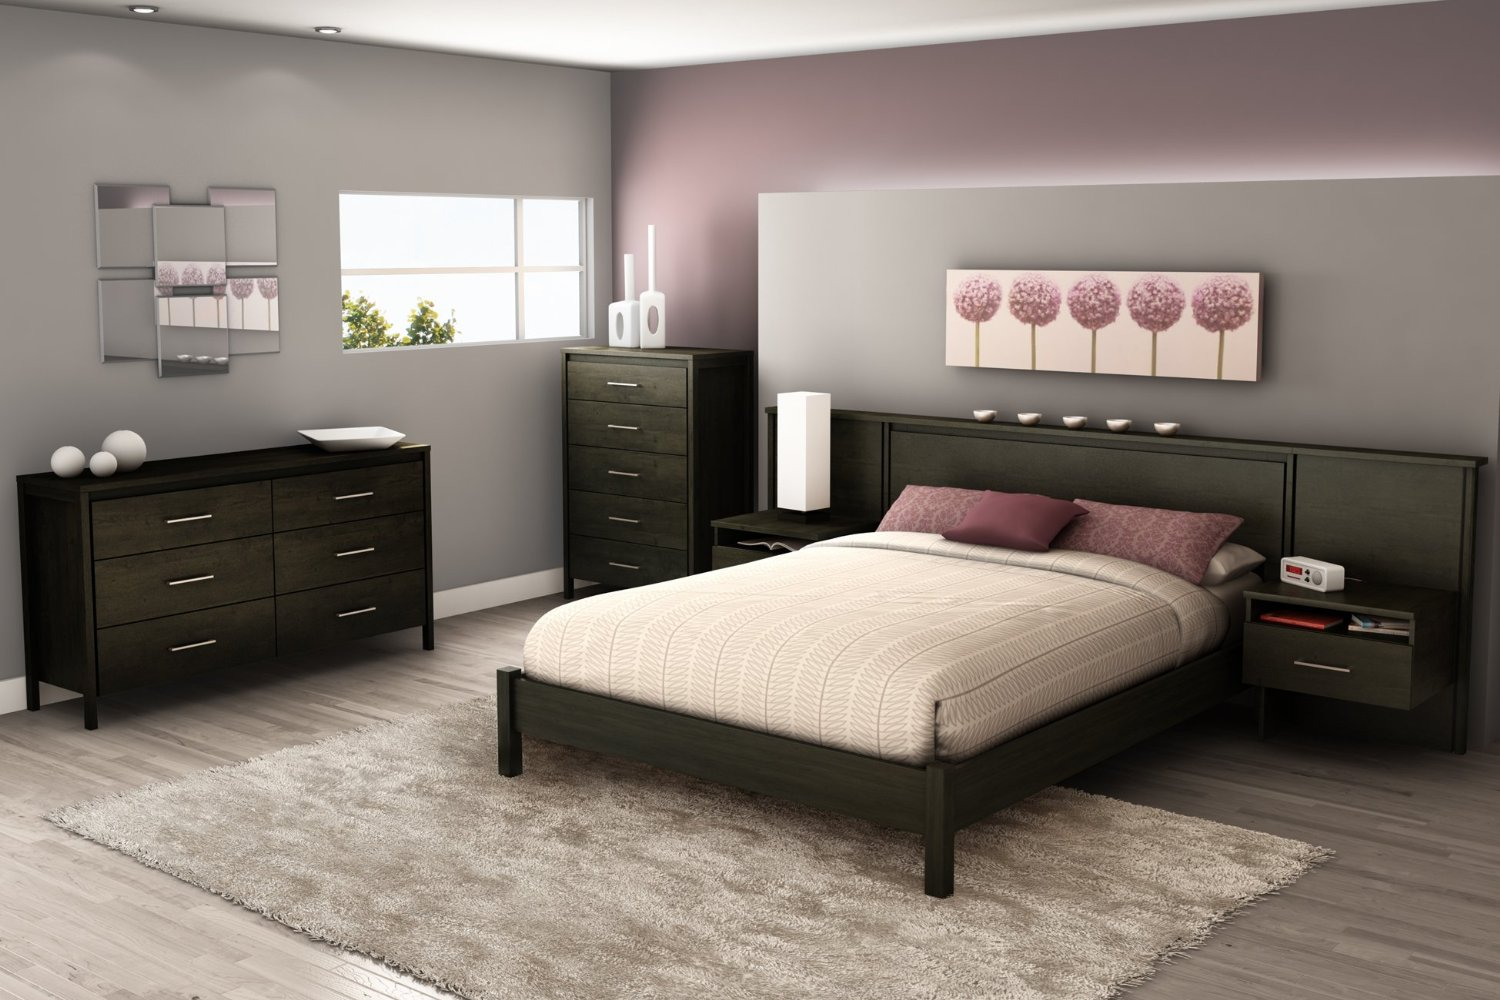 Headboard With Nightstands Attached